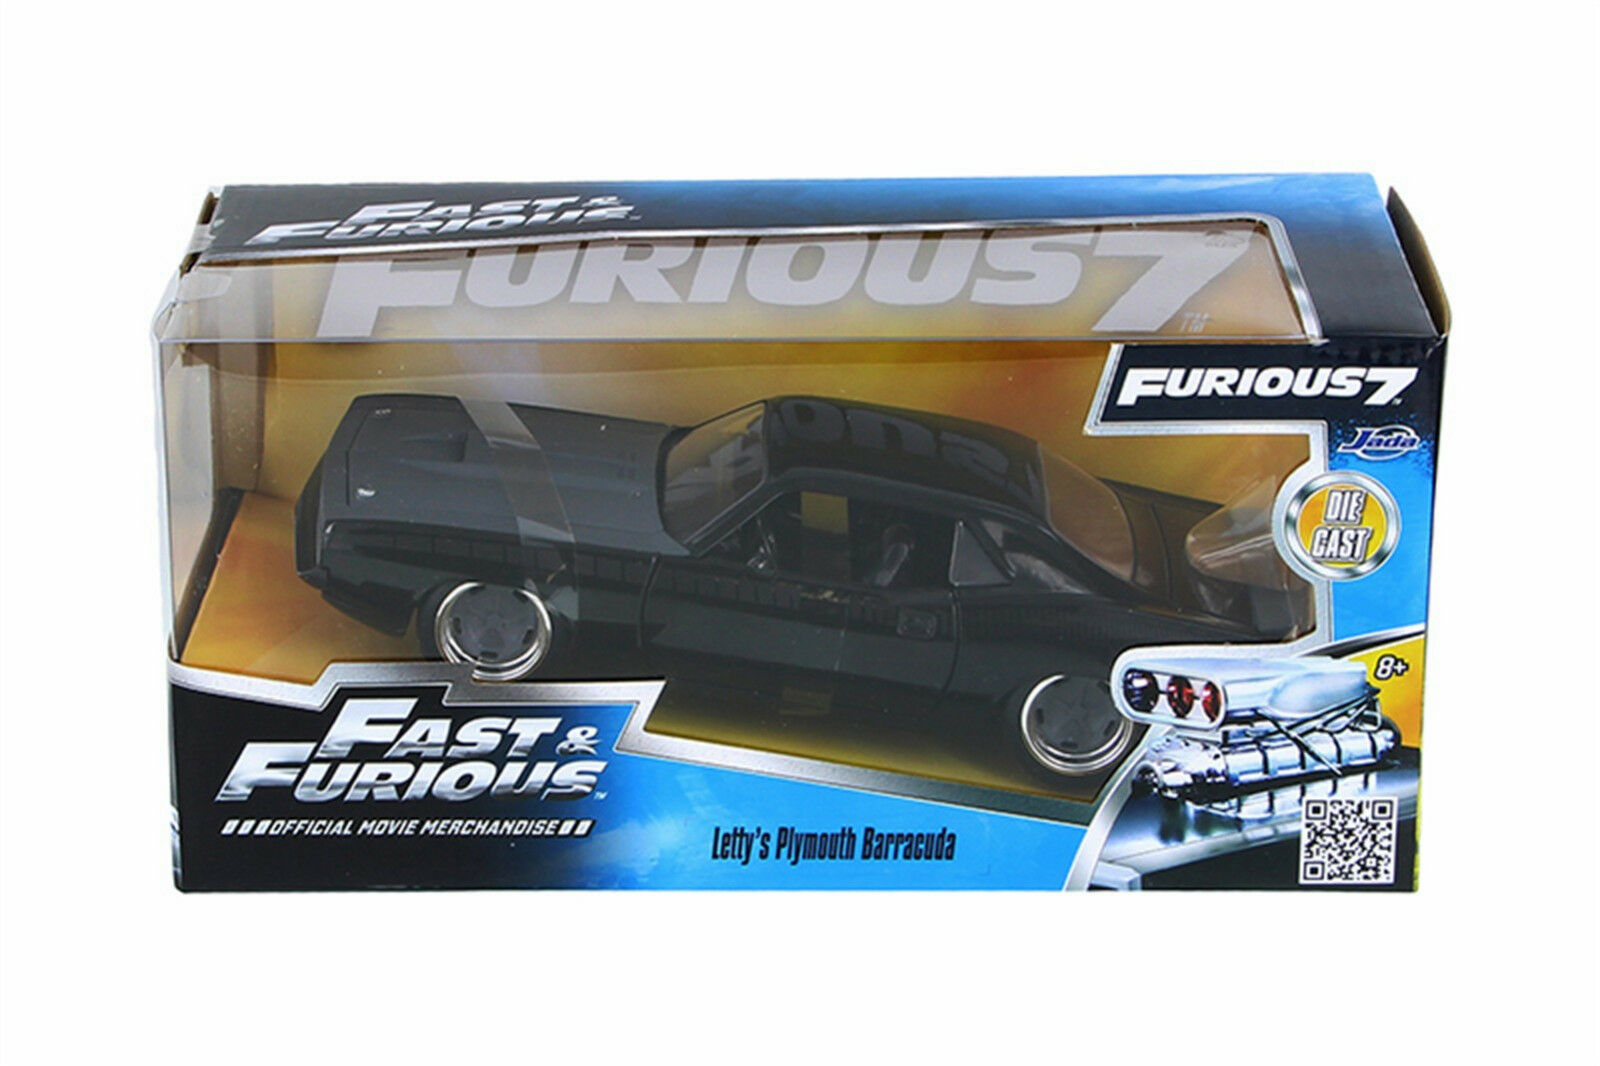 FAST & FURIOUS 7 Lettys Plymouth Barracuda 1 24 SCALE DIECAST OPENING FEATURES